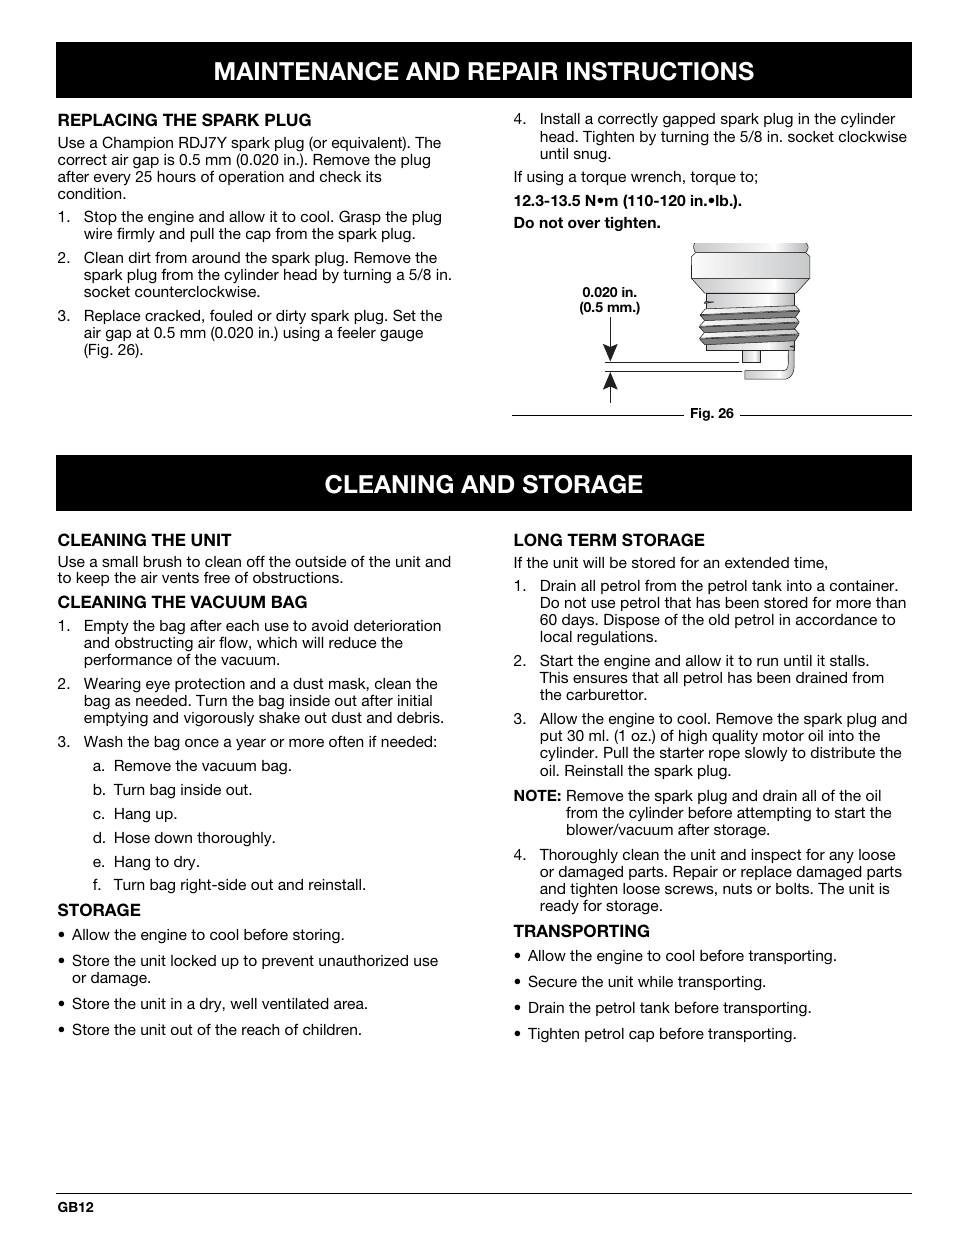 Maintenance and repair instructions, Cleaning and storage